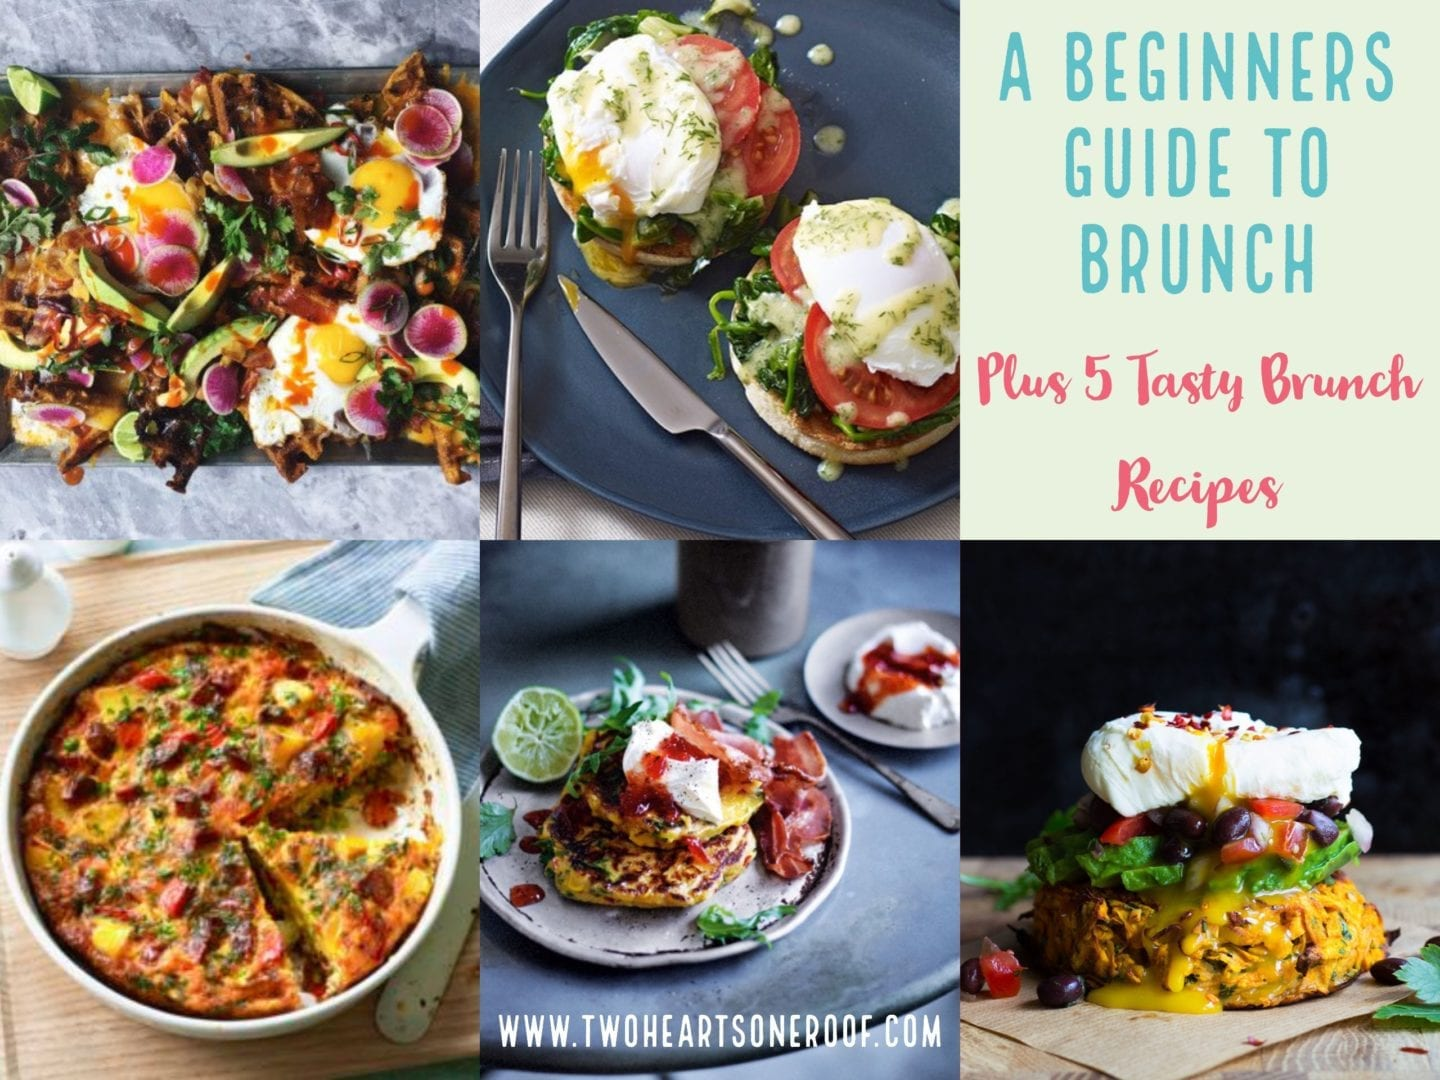 The Beginners Guide to Brunch – Plus 5 Tasty Brunch Recipes